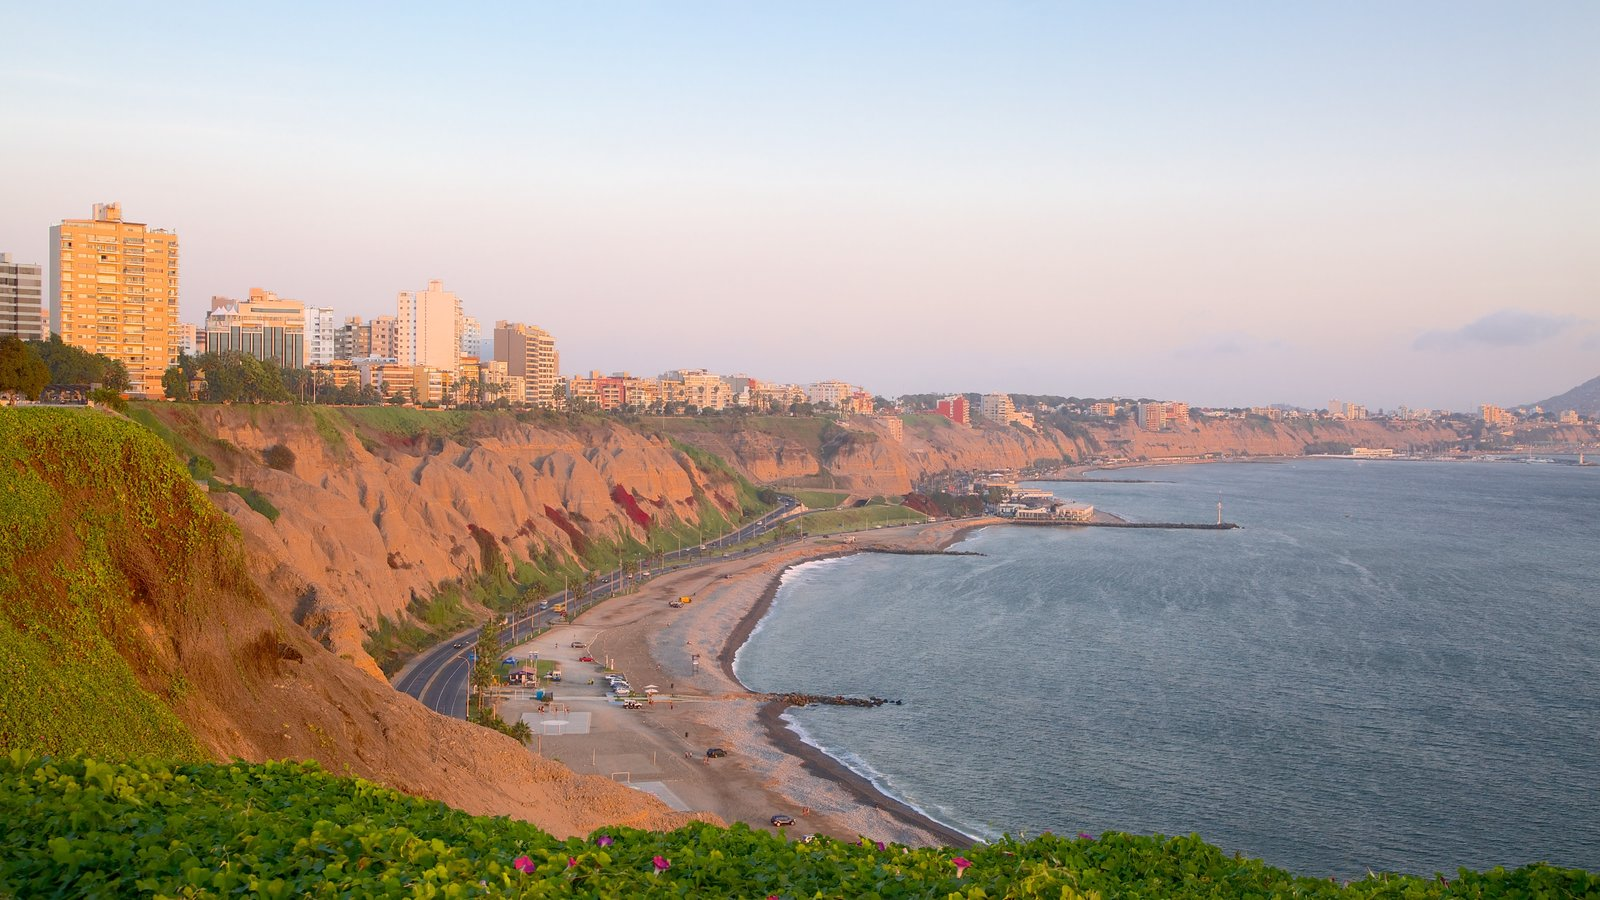 Lima featuring a sandy beach, landscape views and a sunset